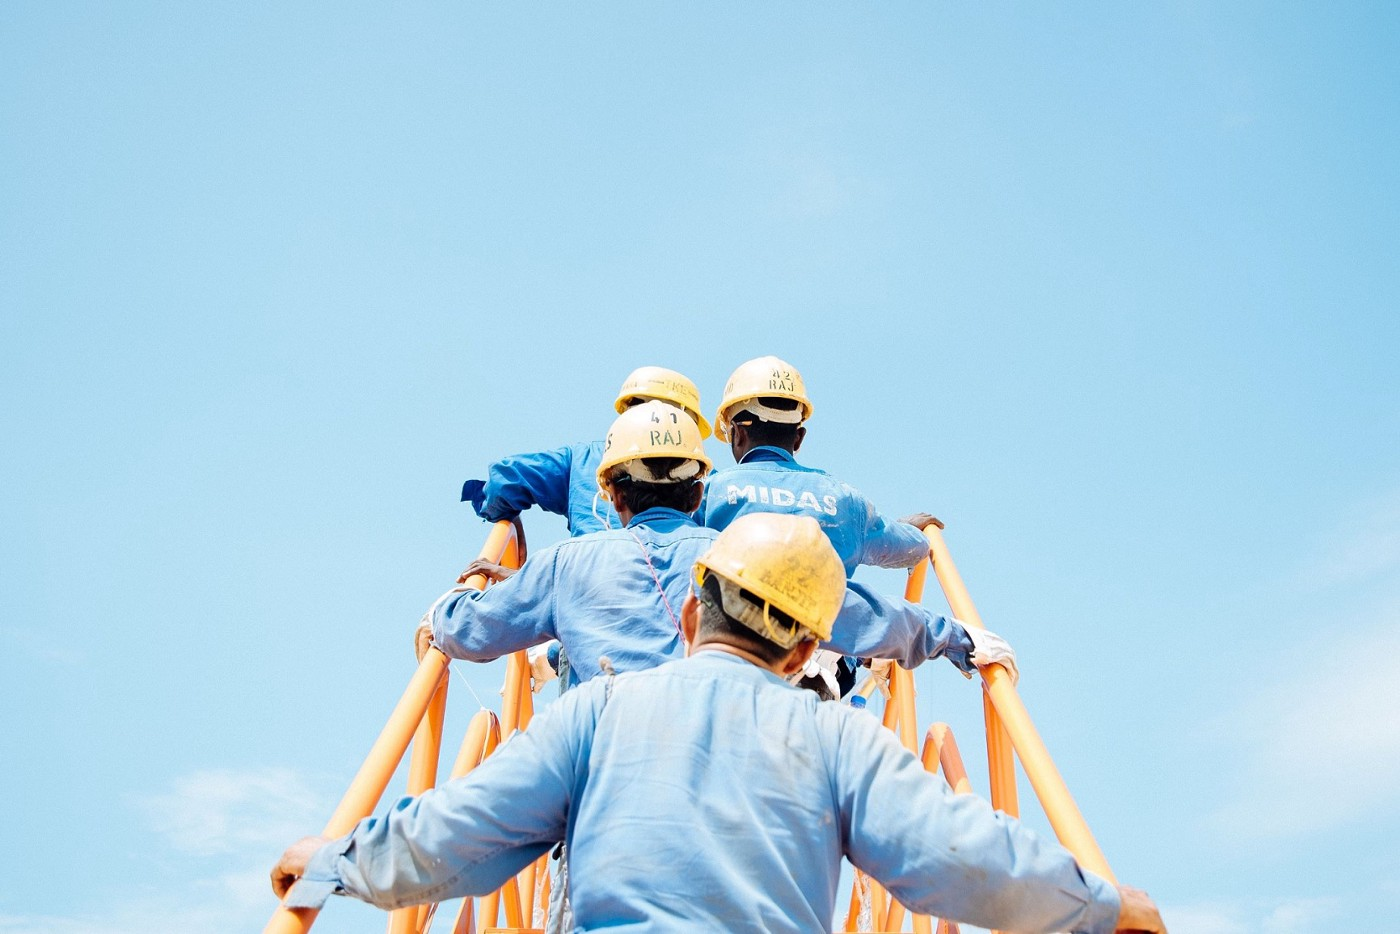 Work Safety: workers on the way